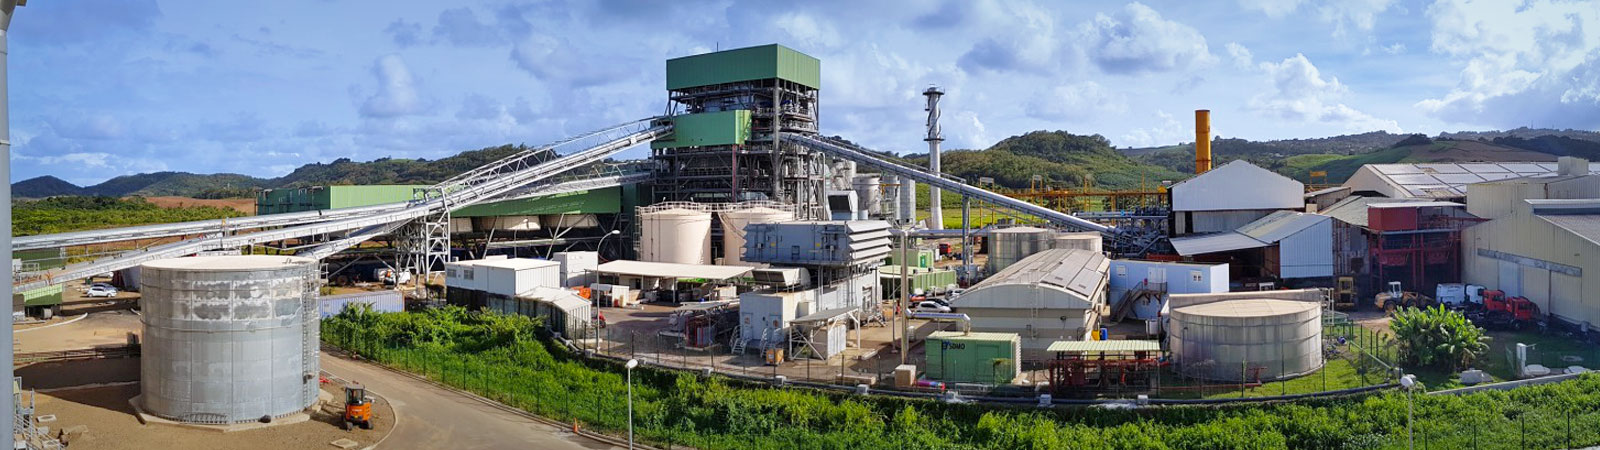 Construction of the first all-biomass power plant in Martinique